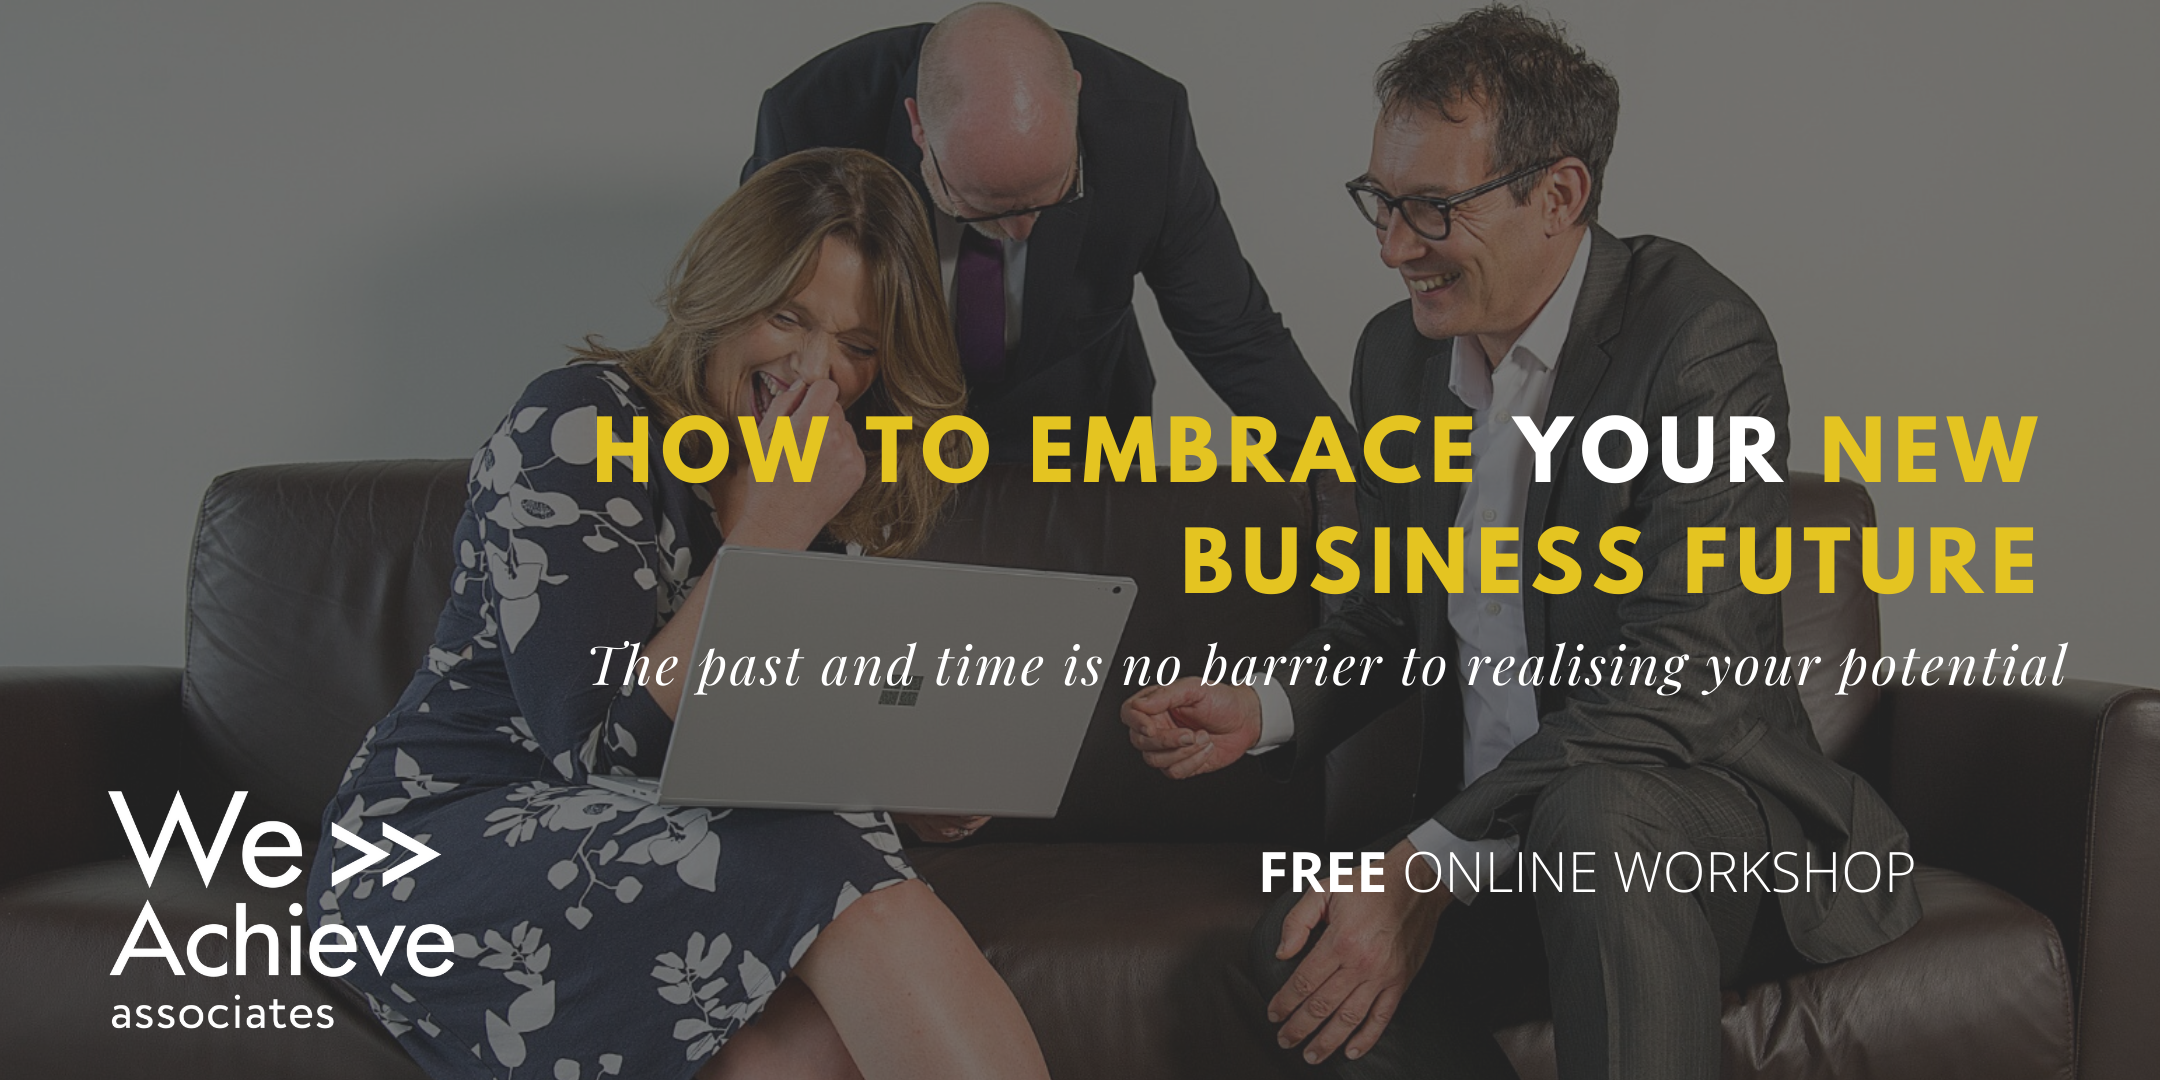 FREE ONLINE WORKSHOP:How to embrace your new business future.